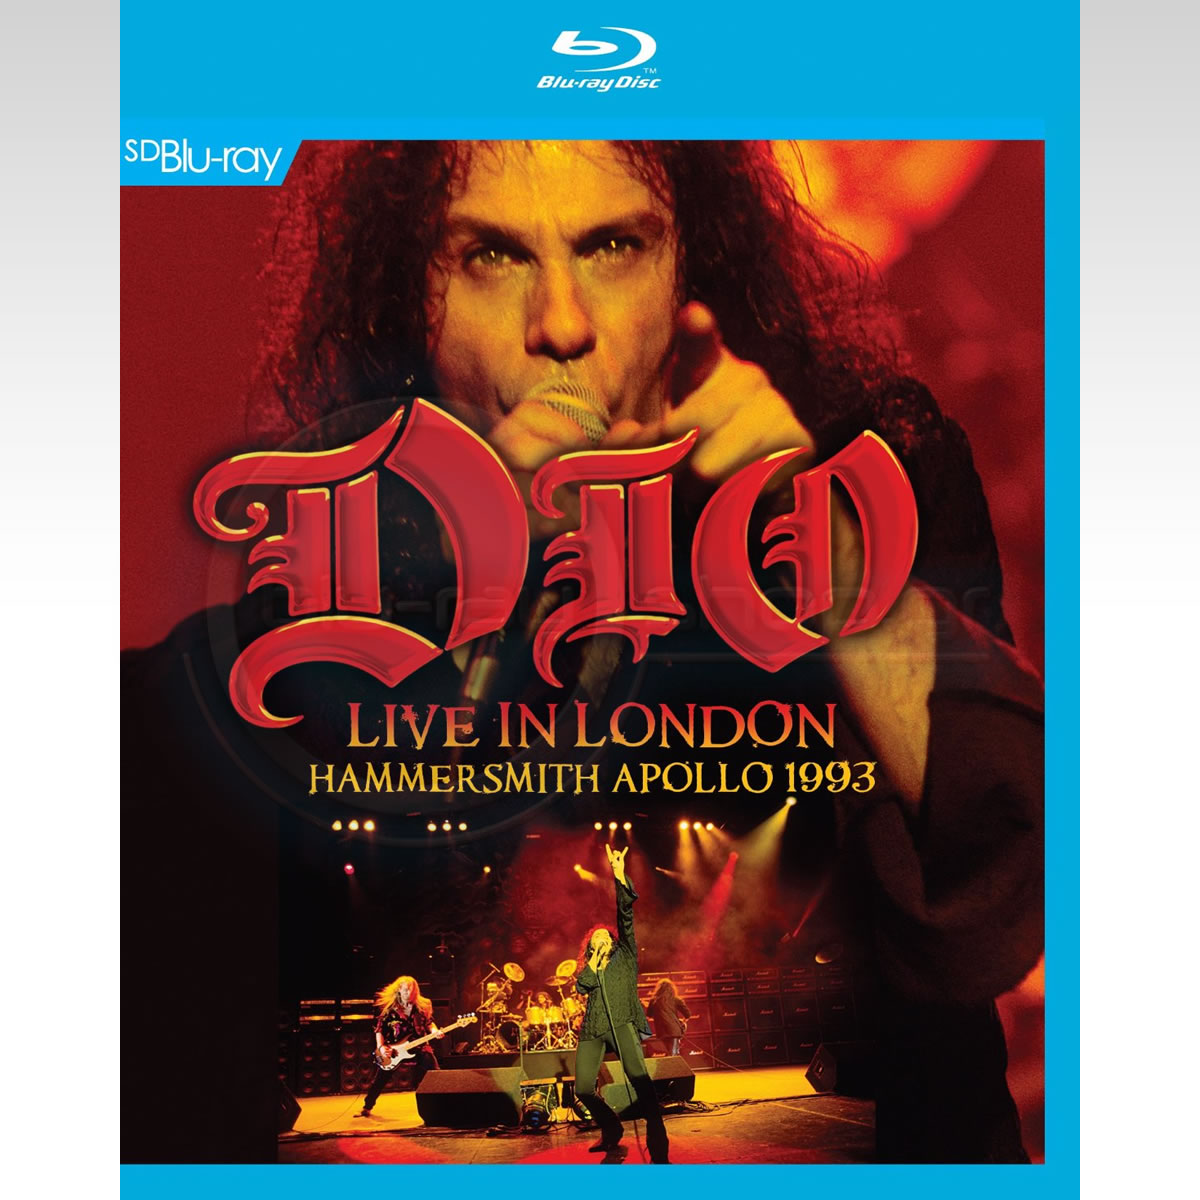 DIO: LIVE IN LONDON - HAMMERSMITH APOLLO 1993 [SD UPSCALED] (BLU-RAY)